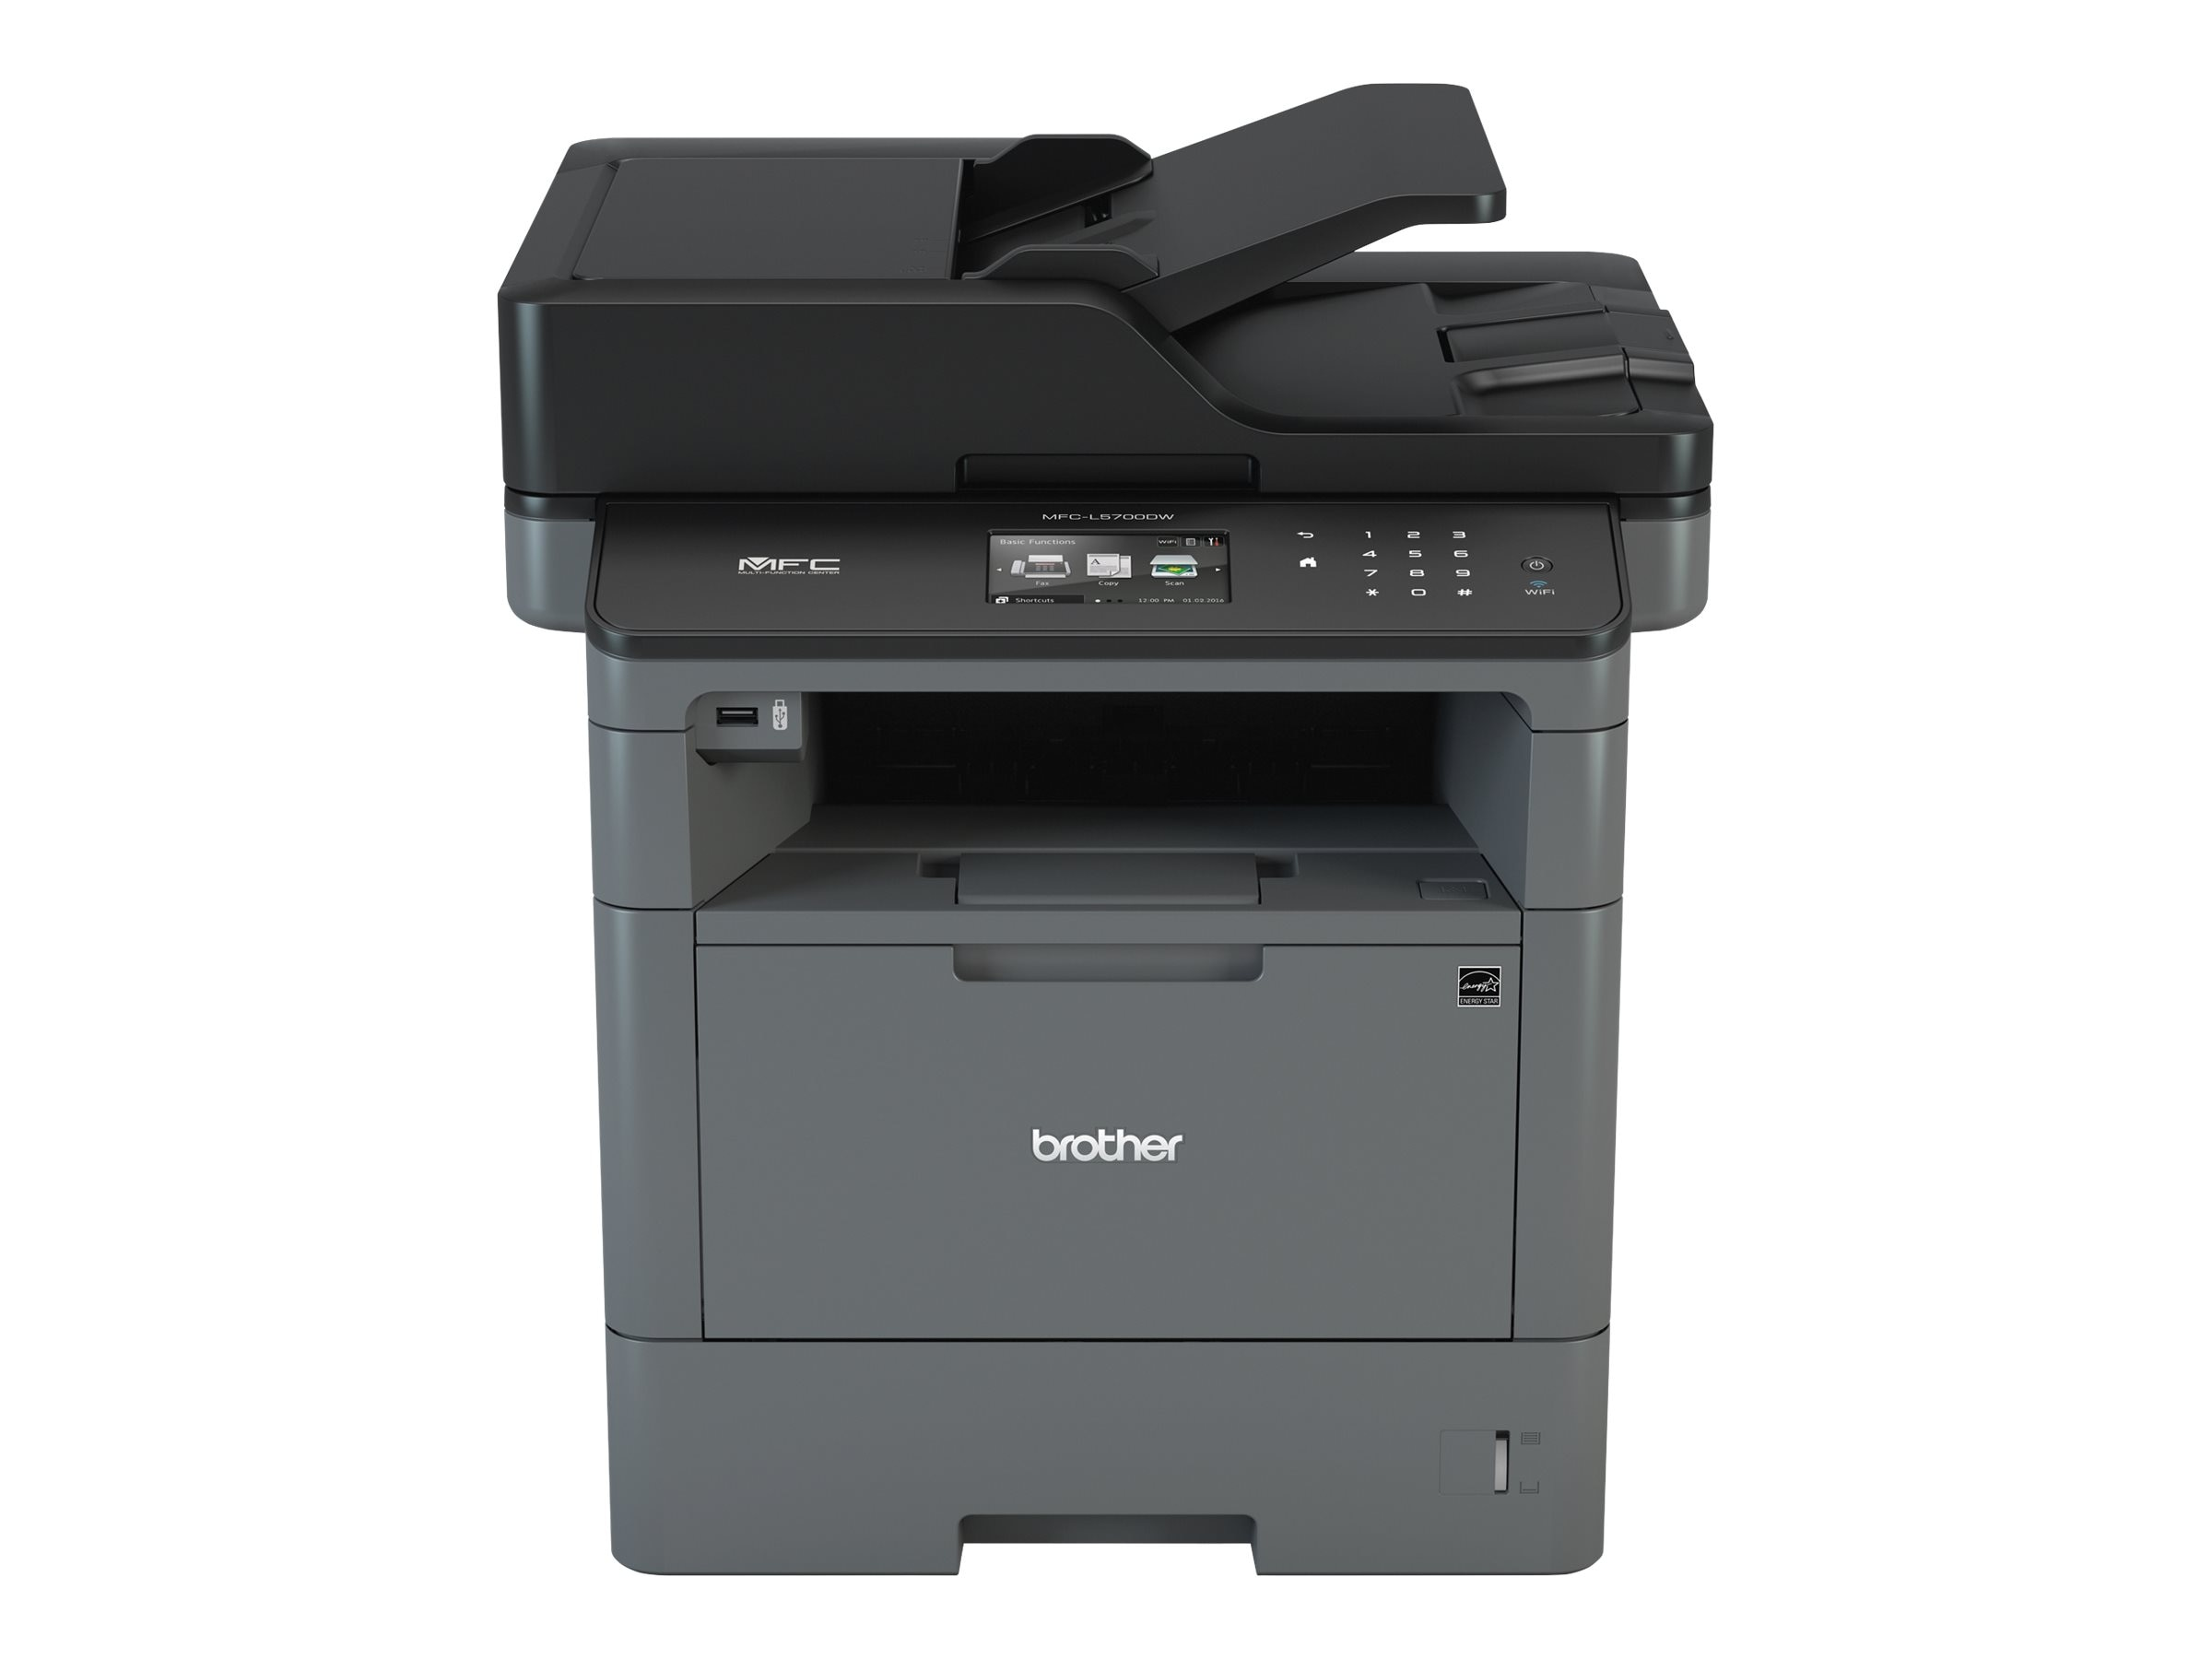 Brother MFC-L5700DW Image 2